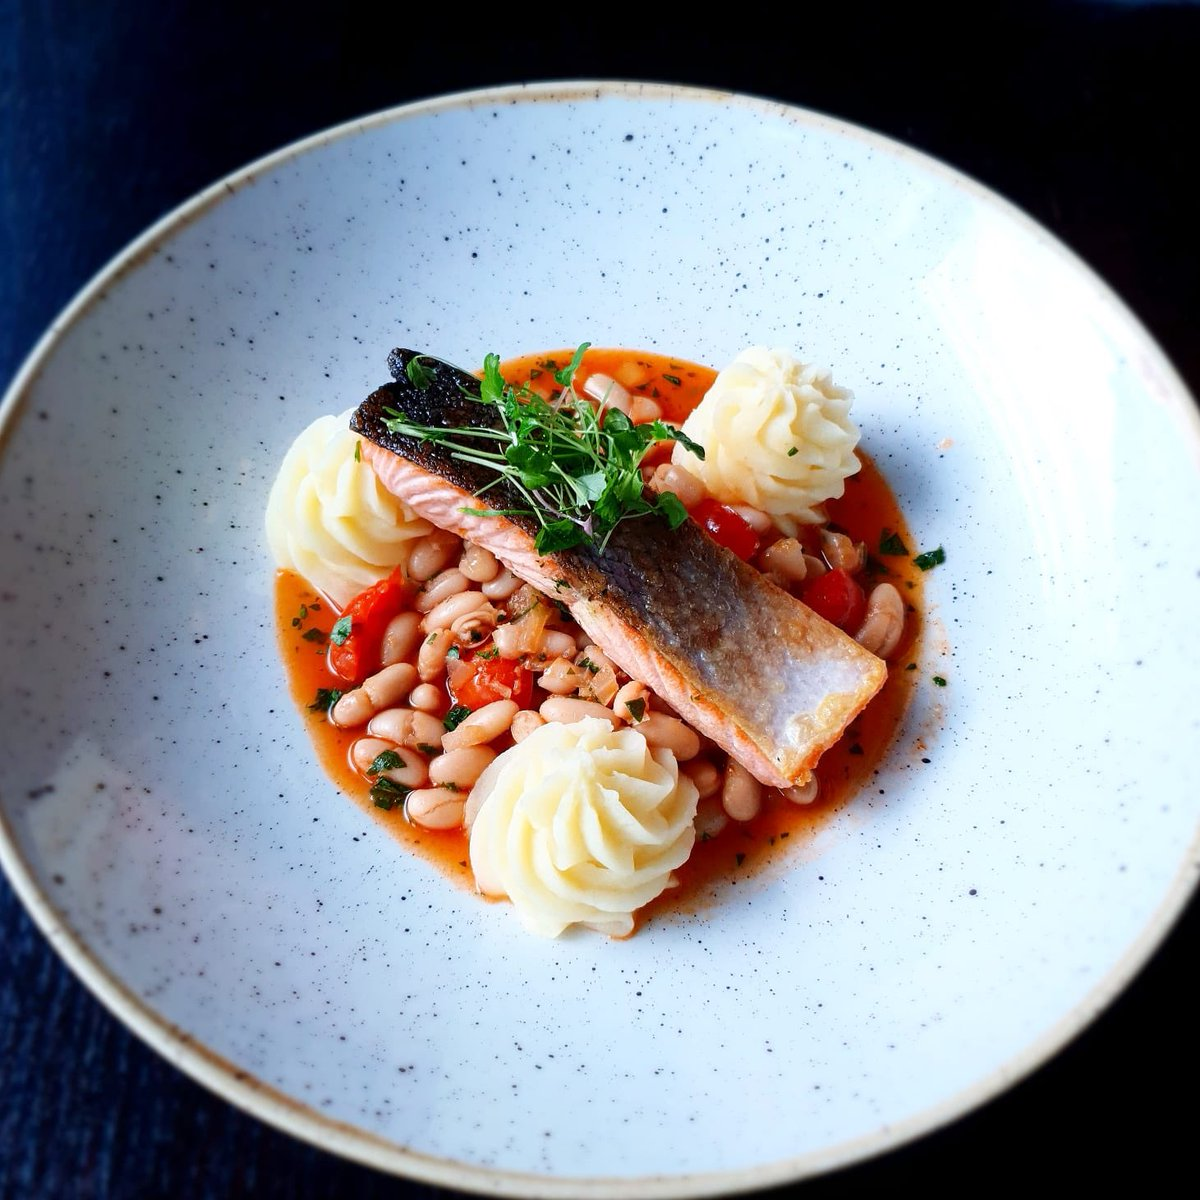 Today's special. Baked Atlantic salmon with cannellini bean ragu and creamy potatoes chef Claudia on the pass 😊👨🍳👩🍳 #dublincitycentre #dublinonourdoorstep #Ourteam #chefgoals #chefteam #dublinfood #dublindining https://t.co/Yjunp9F5EI